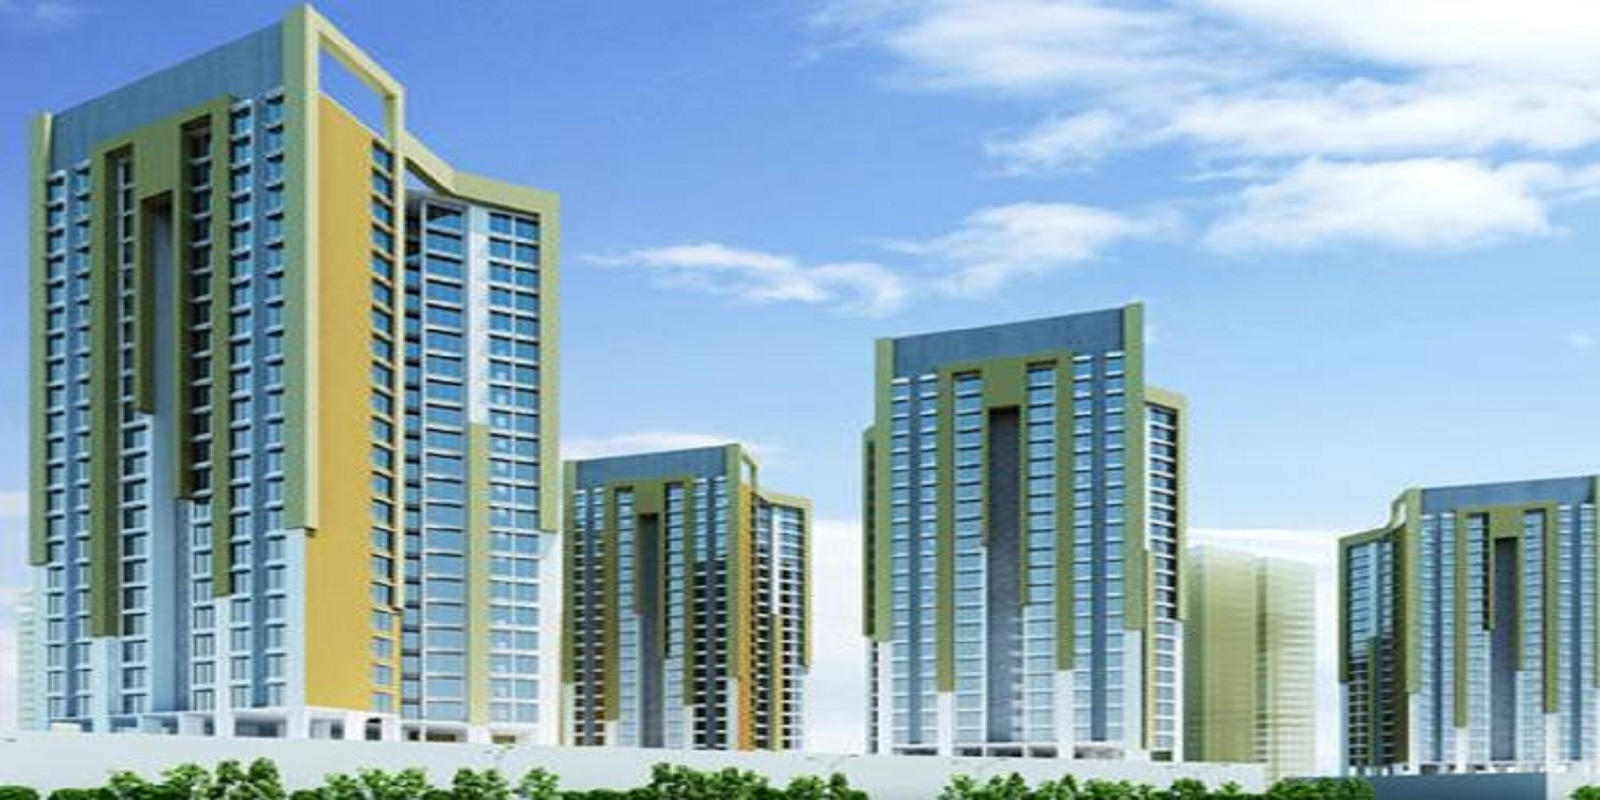 jasani helix heights project project large image1